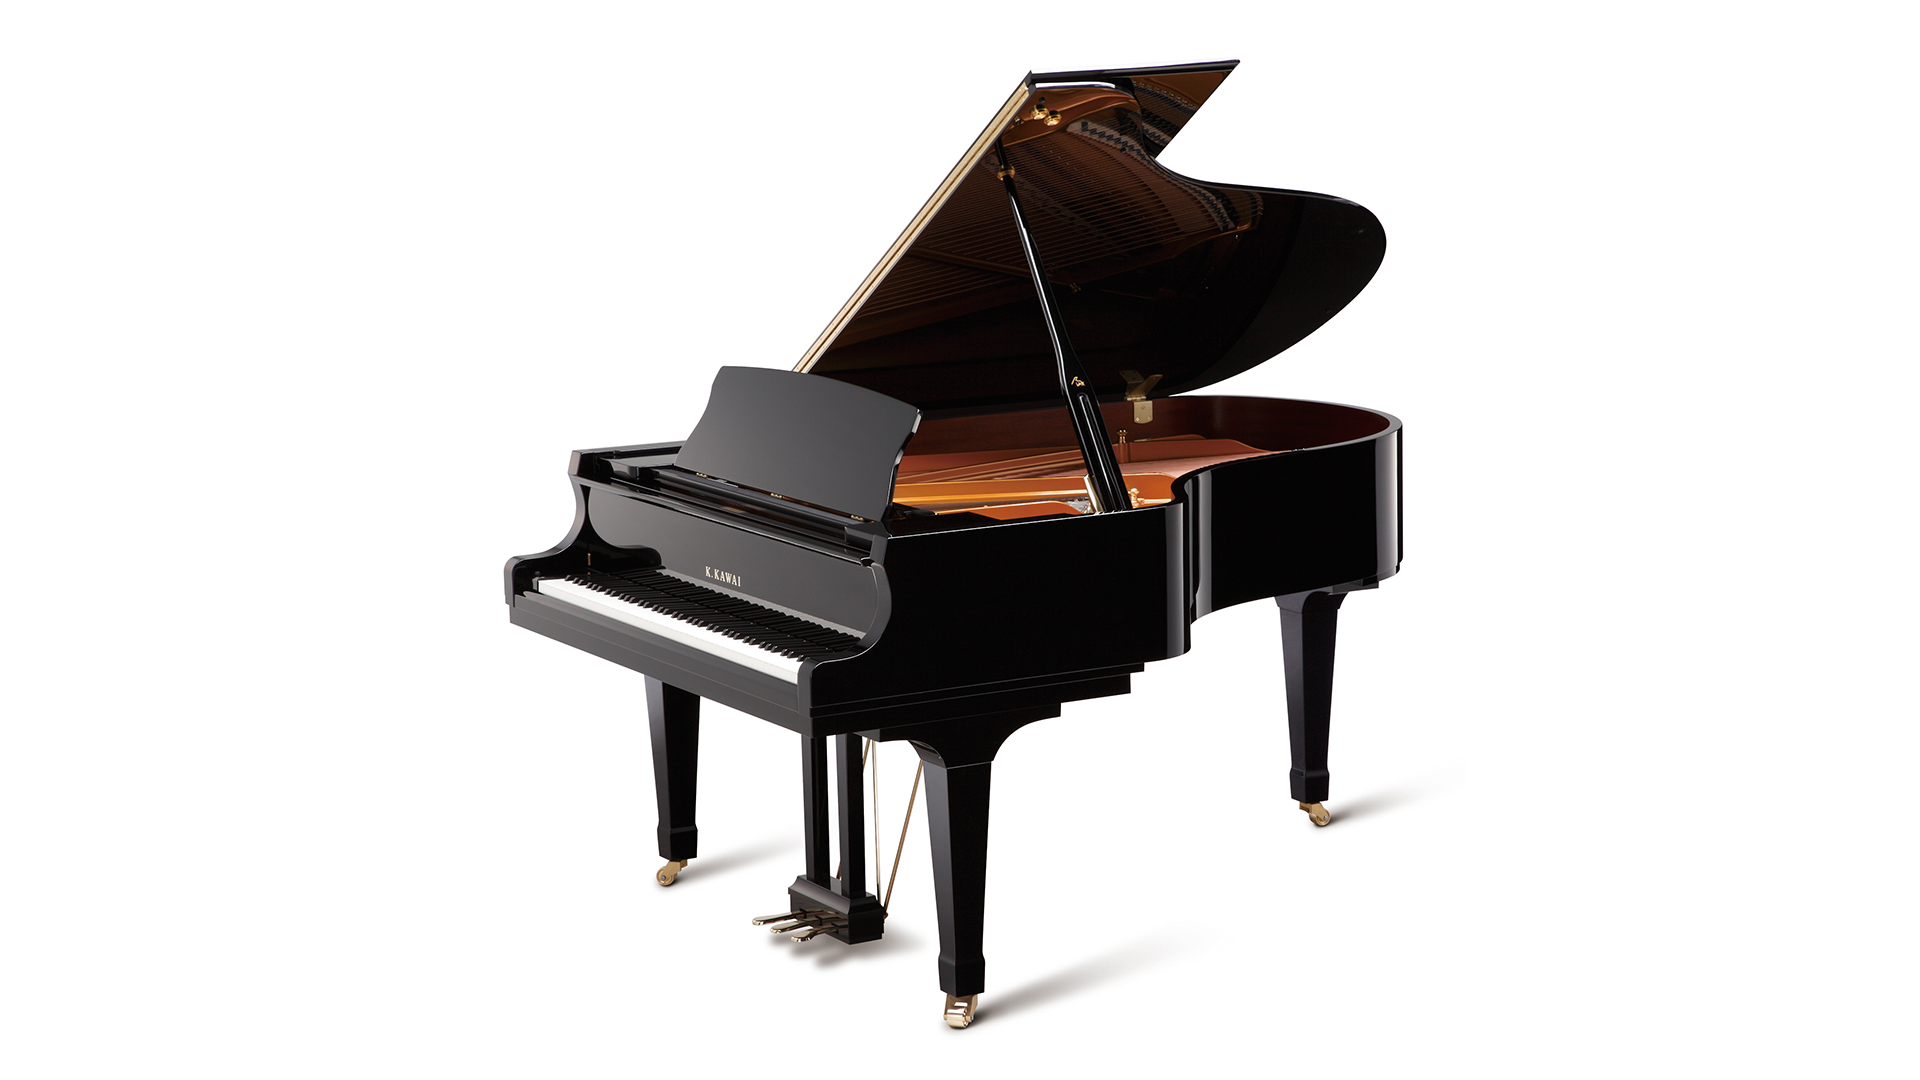 Kawai Grand Piano GX-2 - The best grand piano under $30,000. The GX2 is a new generation of pianos above anything else, half the price of the equivalent Steinway or Bosendorfer but not half the piano.The Kawai Grand Piano GX2 is the best piano under $30,000 in the market. At almost 6'00